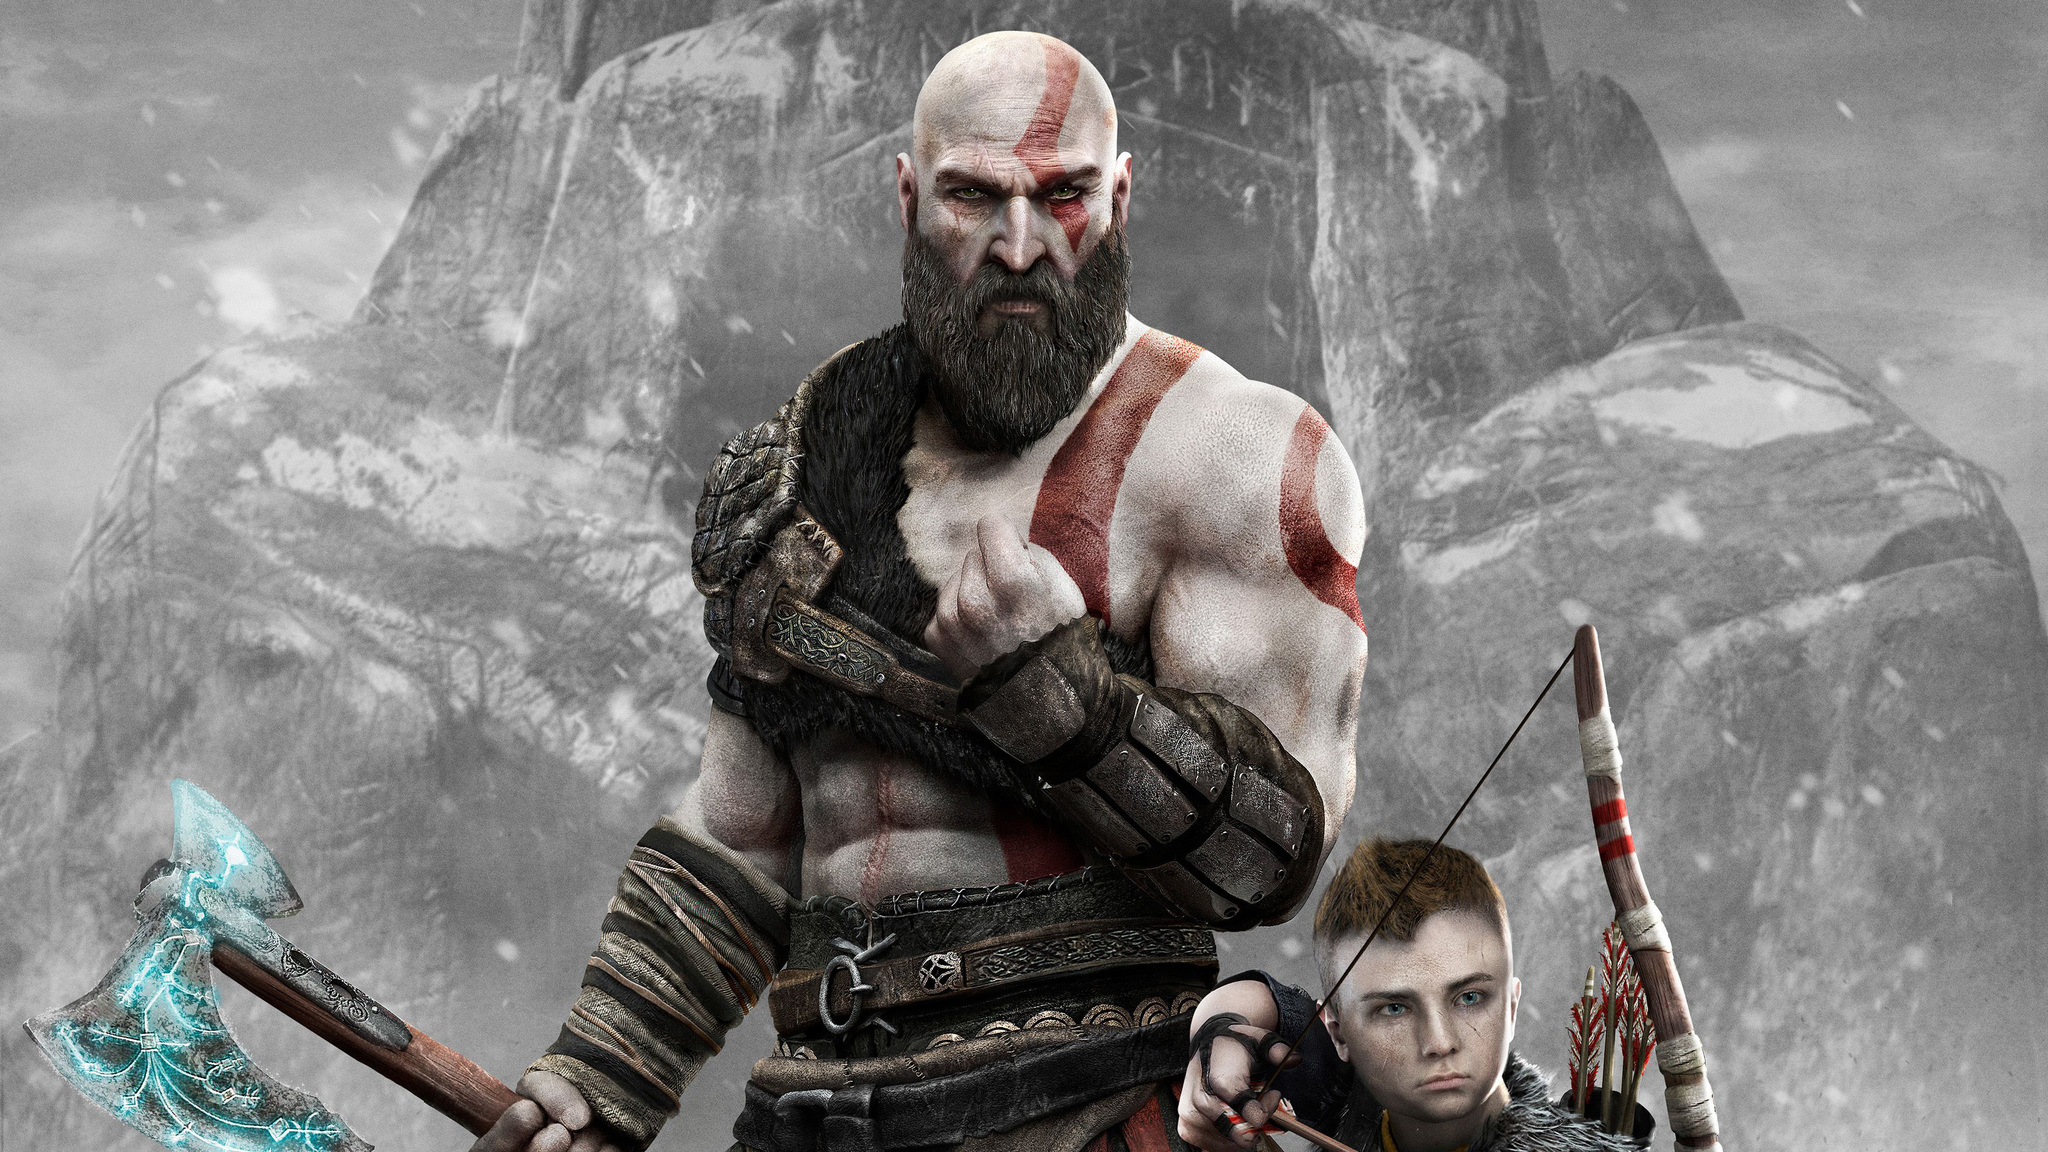 2048x1152 Kratos And Atreus God Of War 4 4k 2018 2048x1152